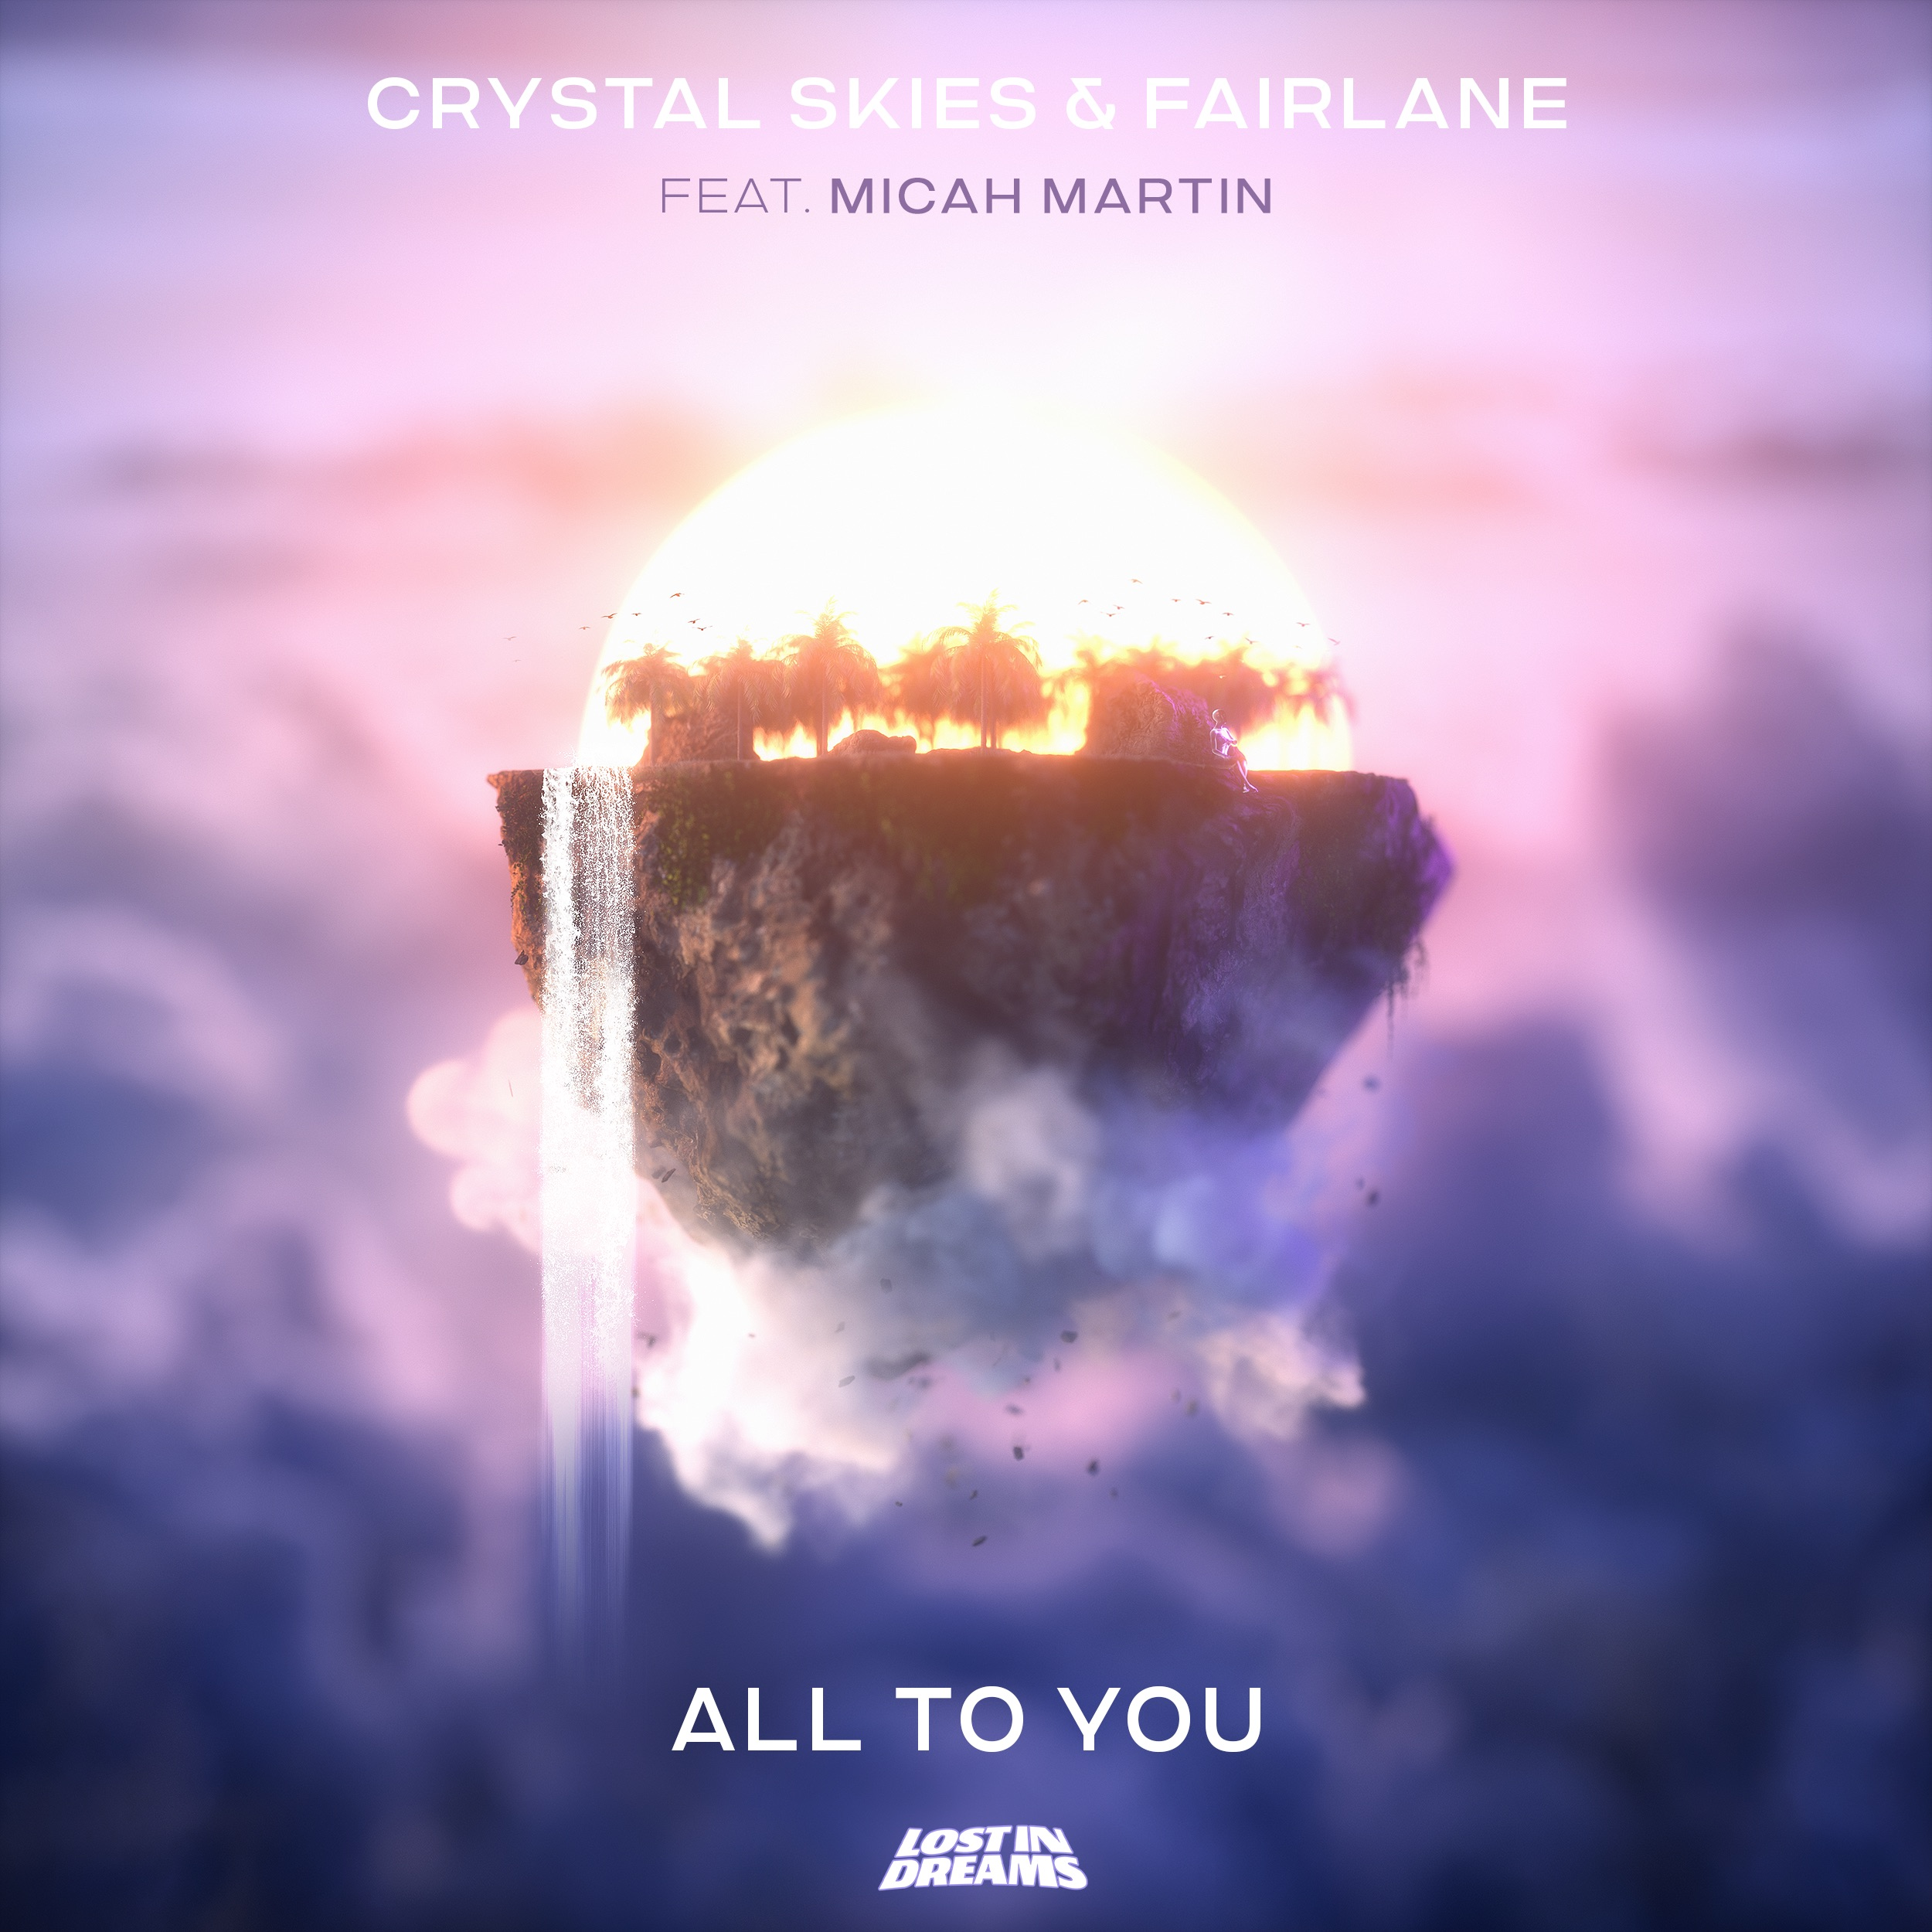 Crystal Skies & Fairlane - All To You ft. Micah Martin